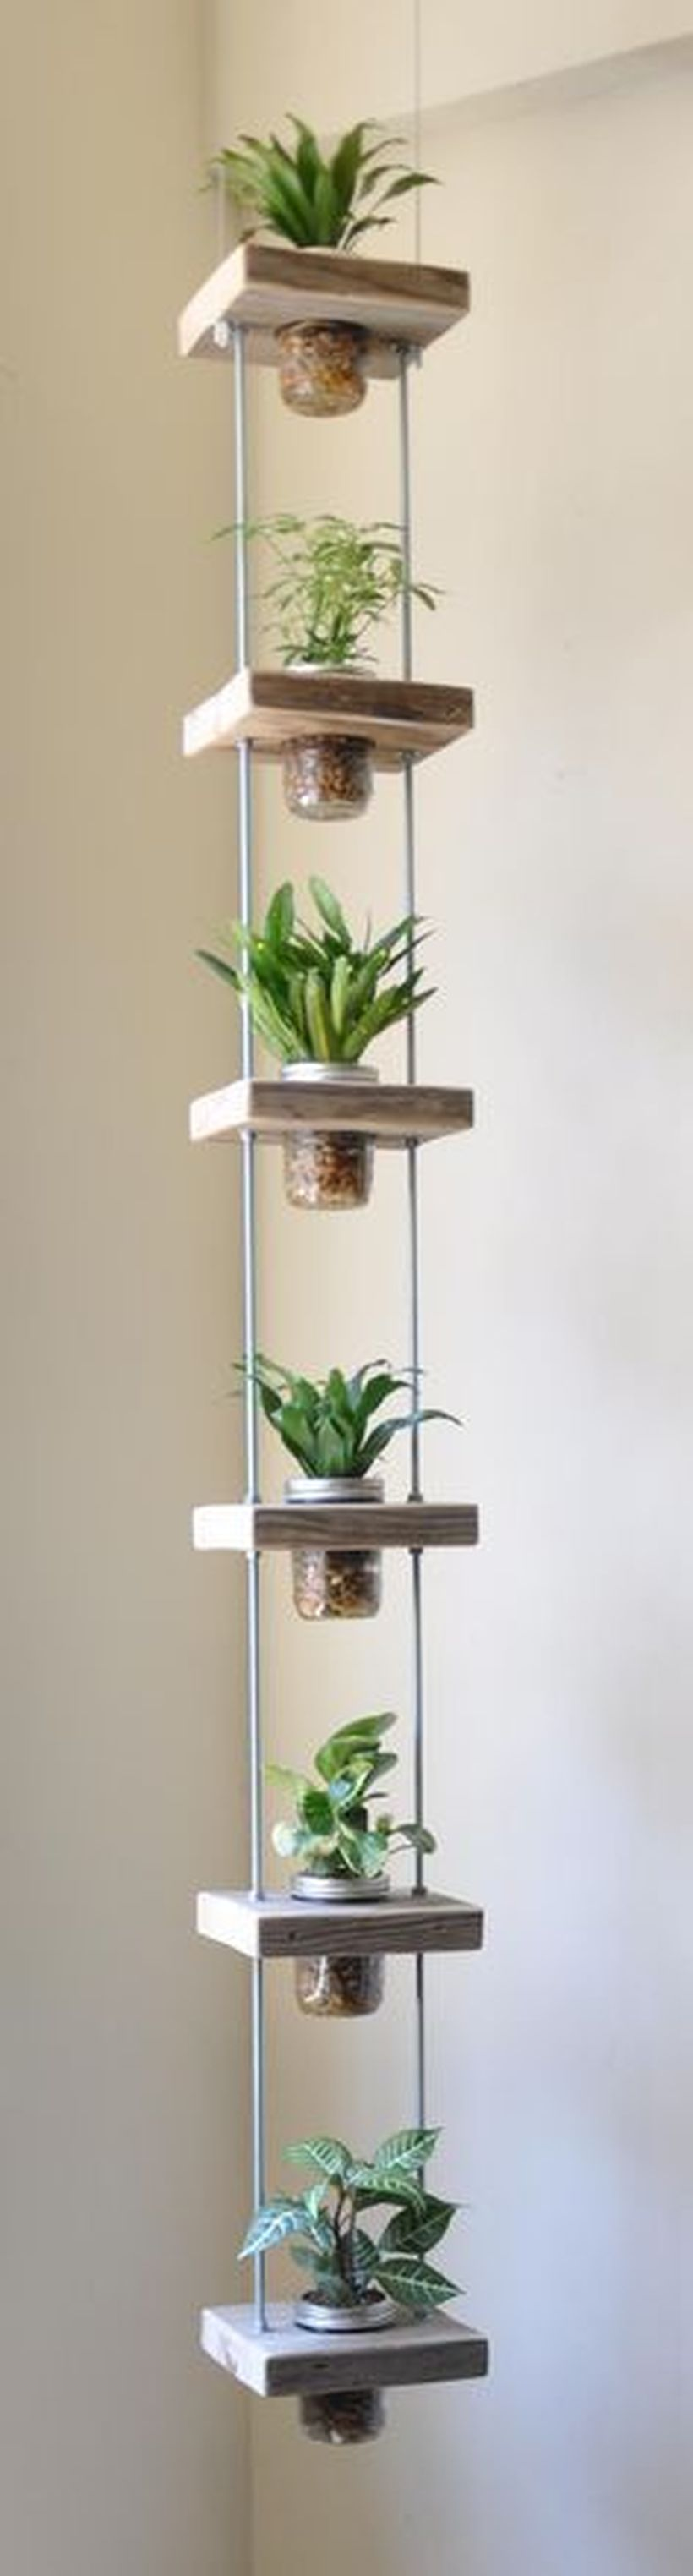 Simple Vertical Garden1